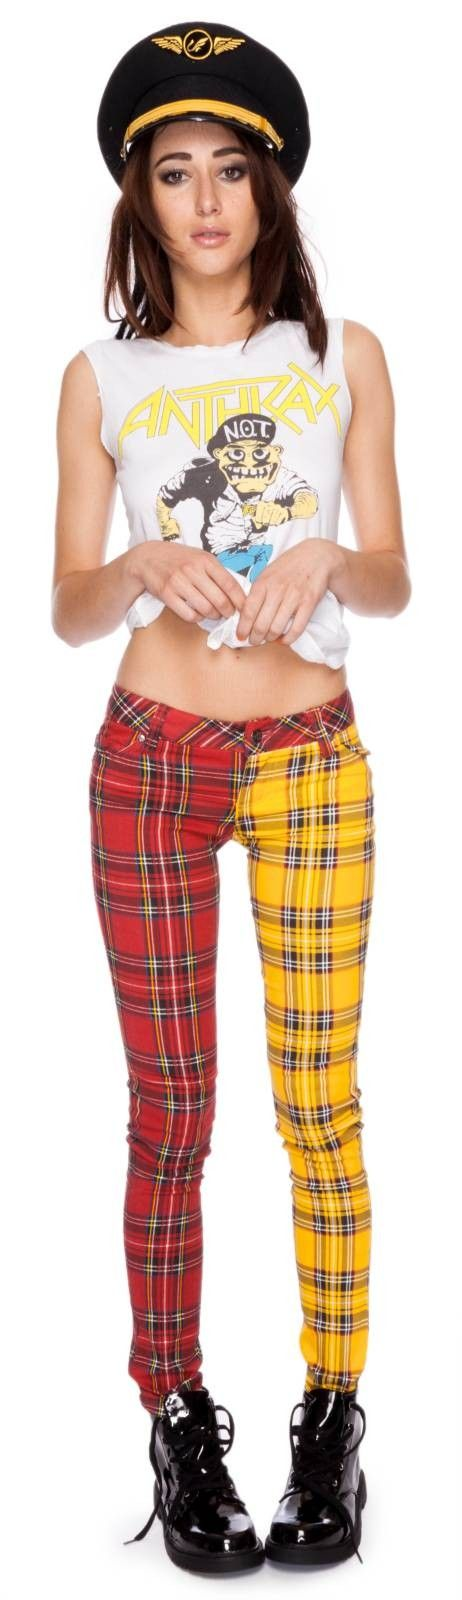 this reminds me of clueless #random  #dollskill